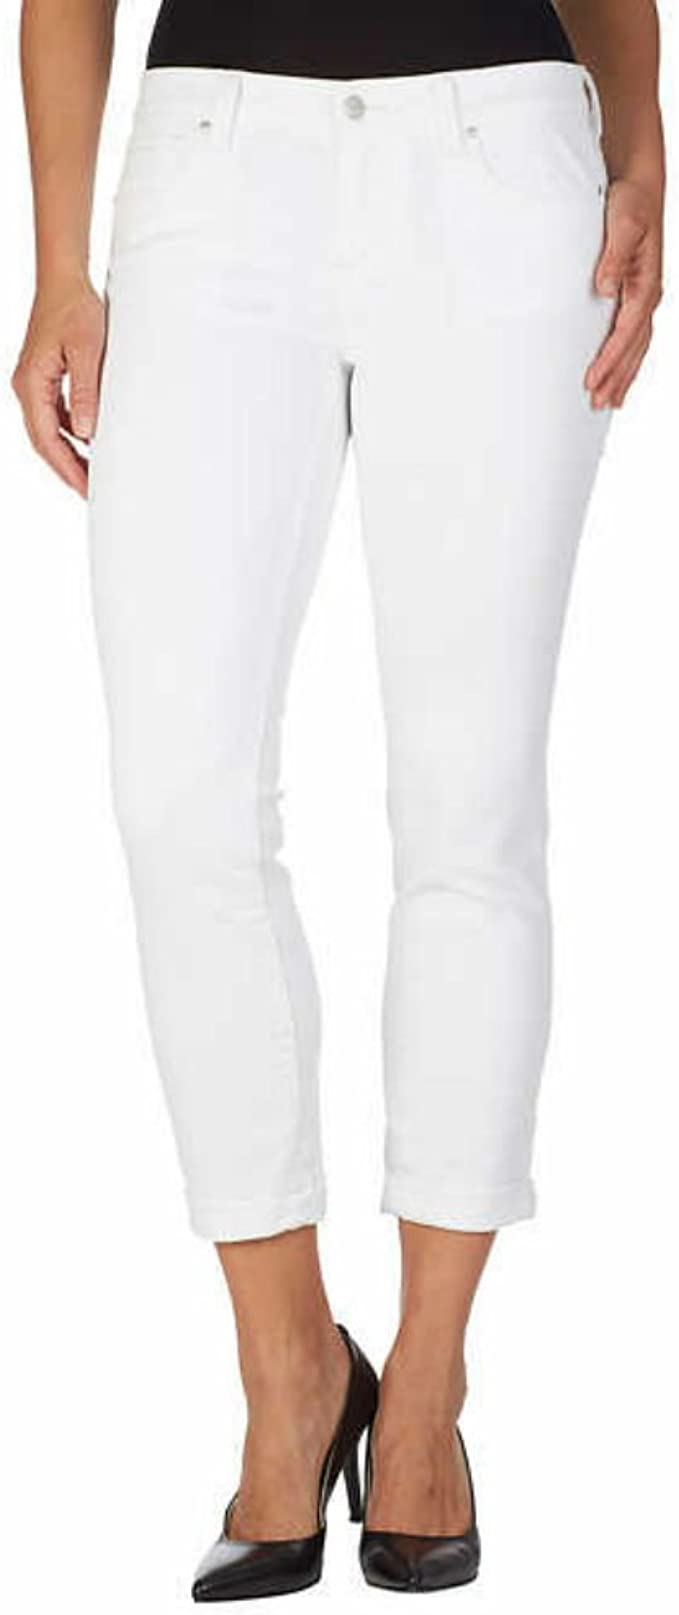 Jessica Simpson Ladies/' Relaxed Skinny Roll Crop Jeans Select Size WHITE